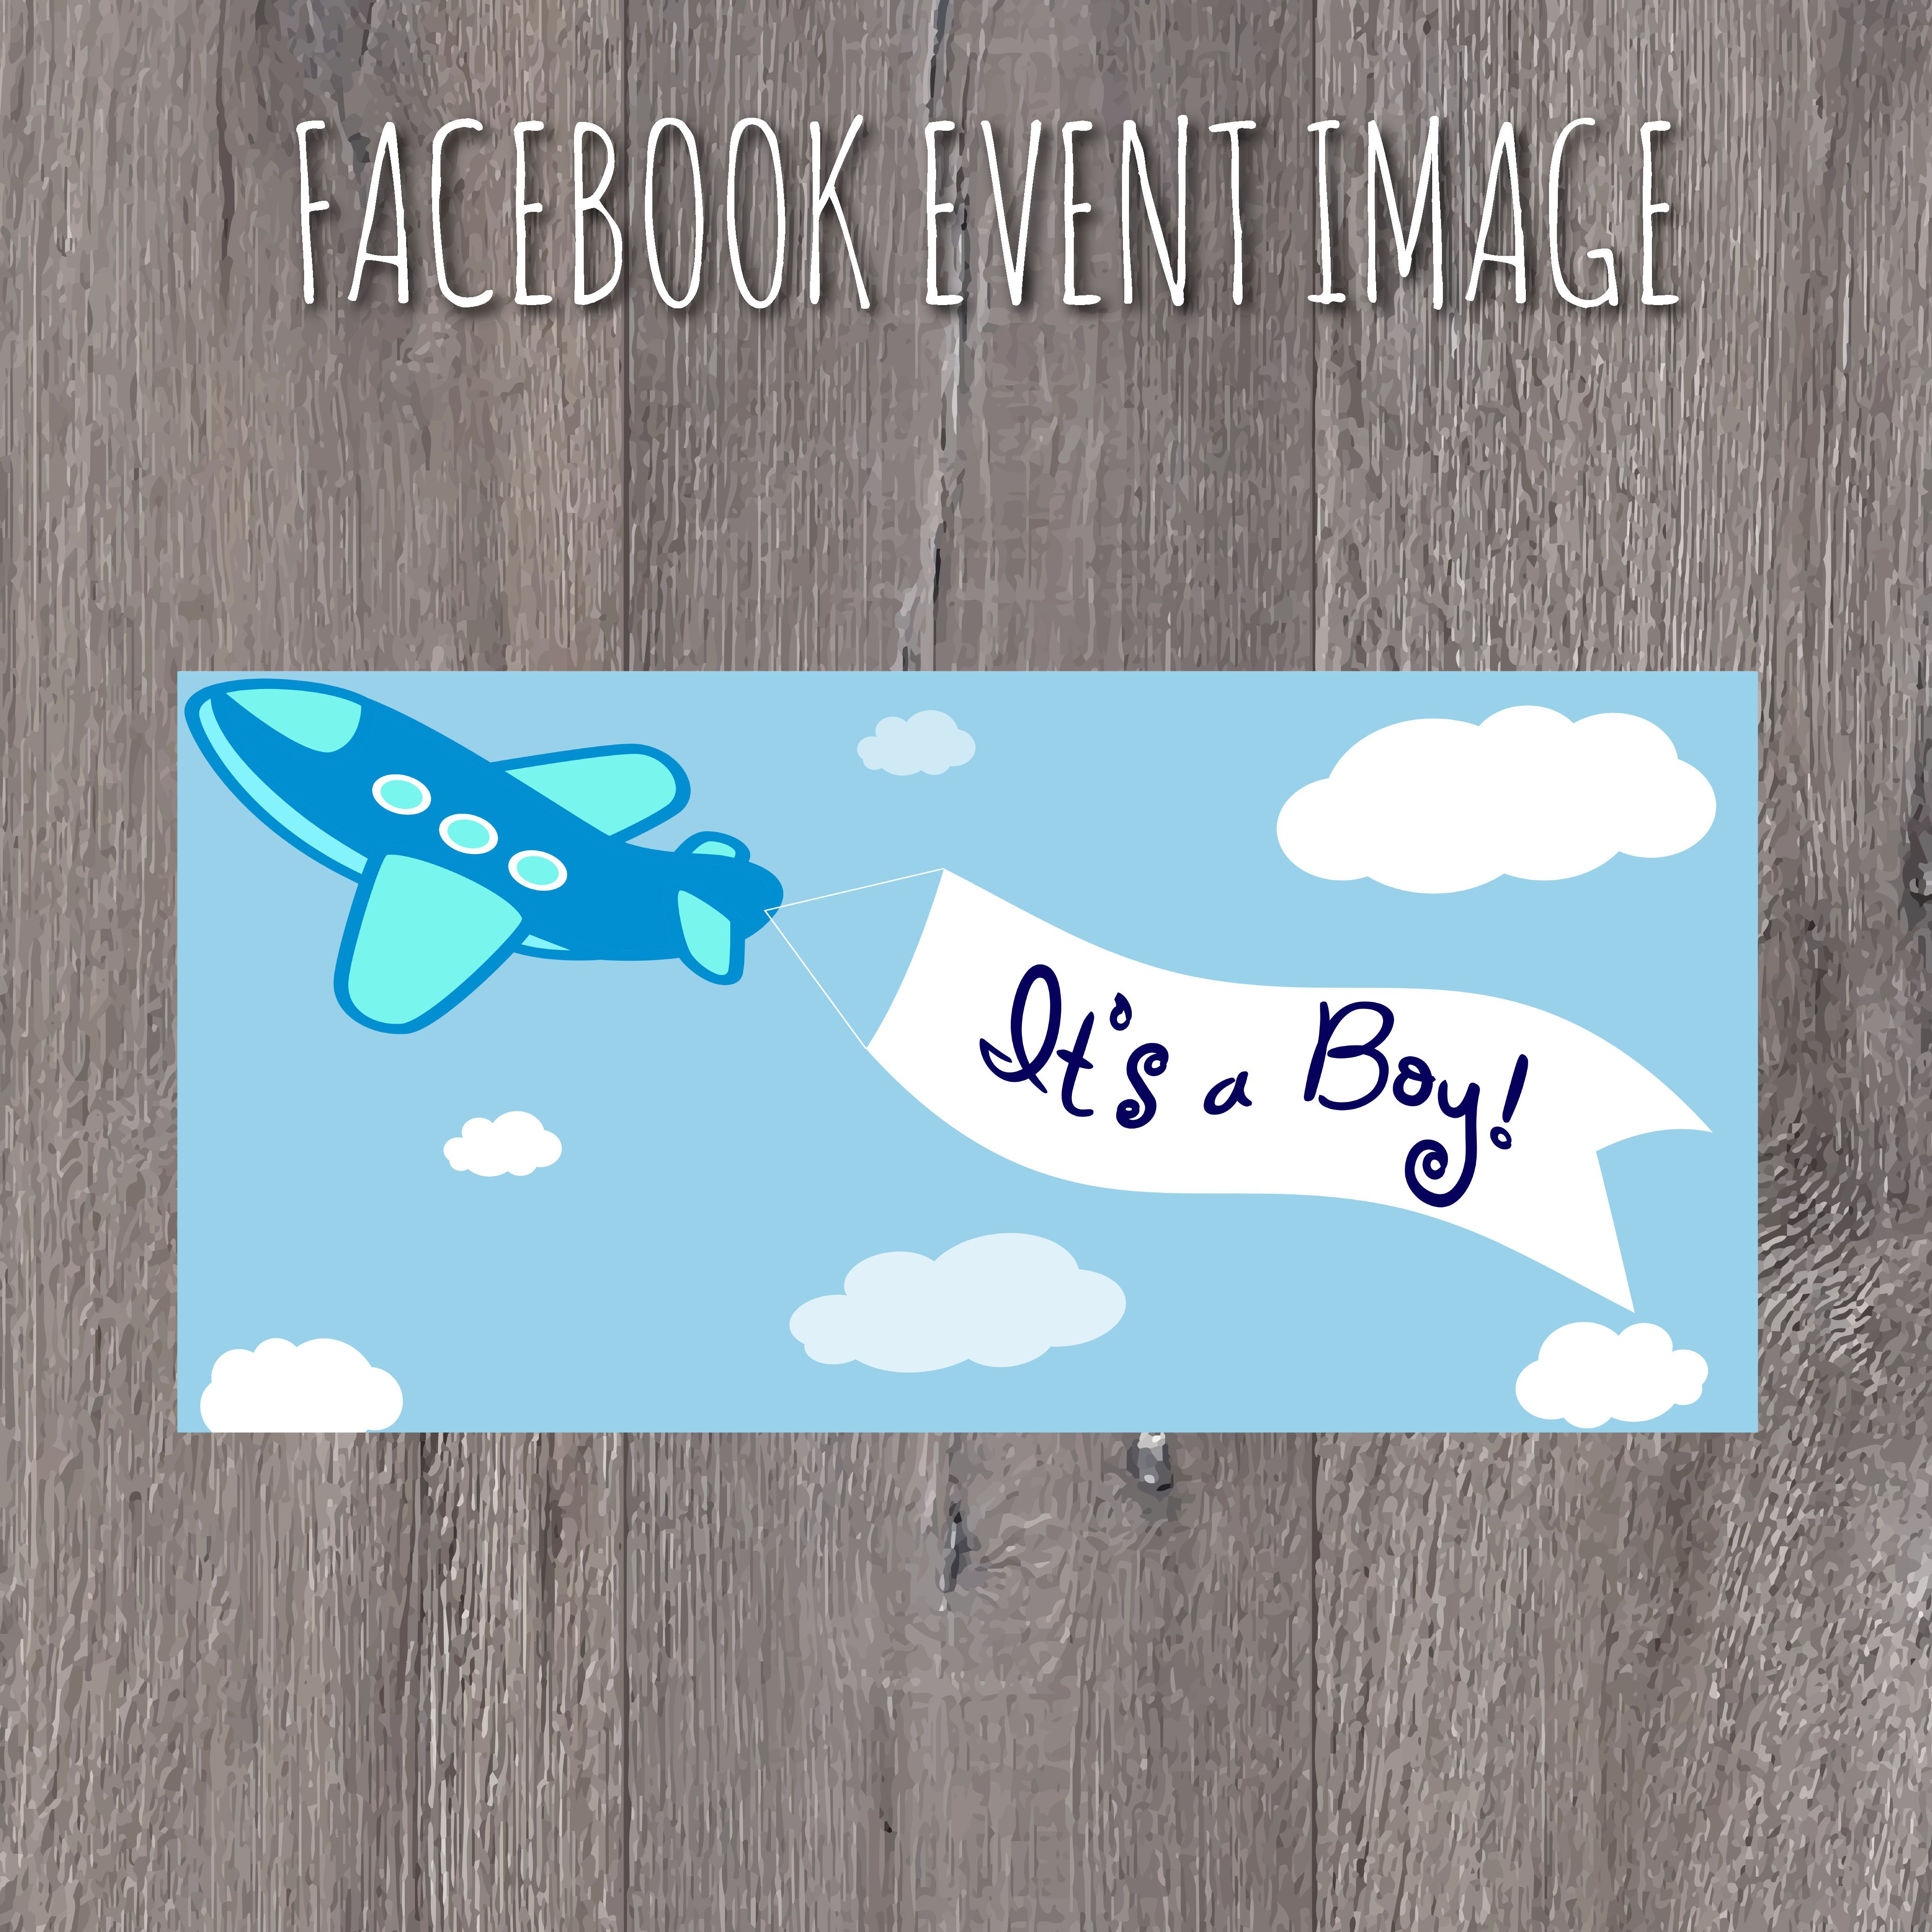 Baby Shower Facebook Event Image Its A Boy Airplanes, Baby,